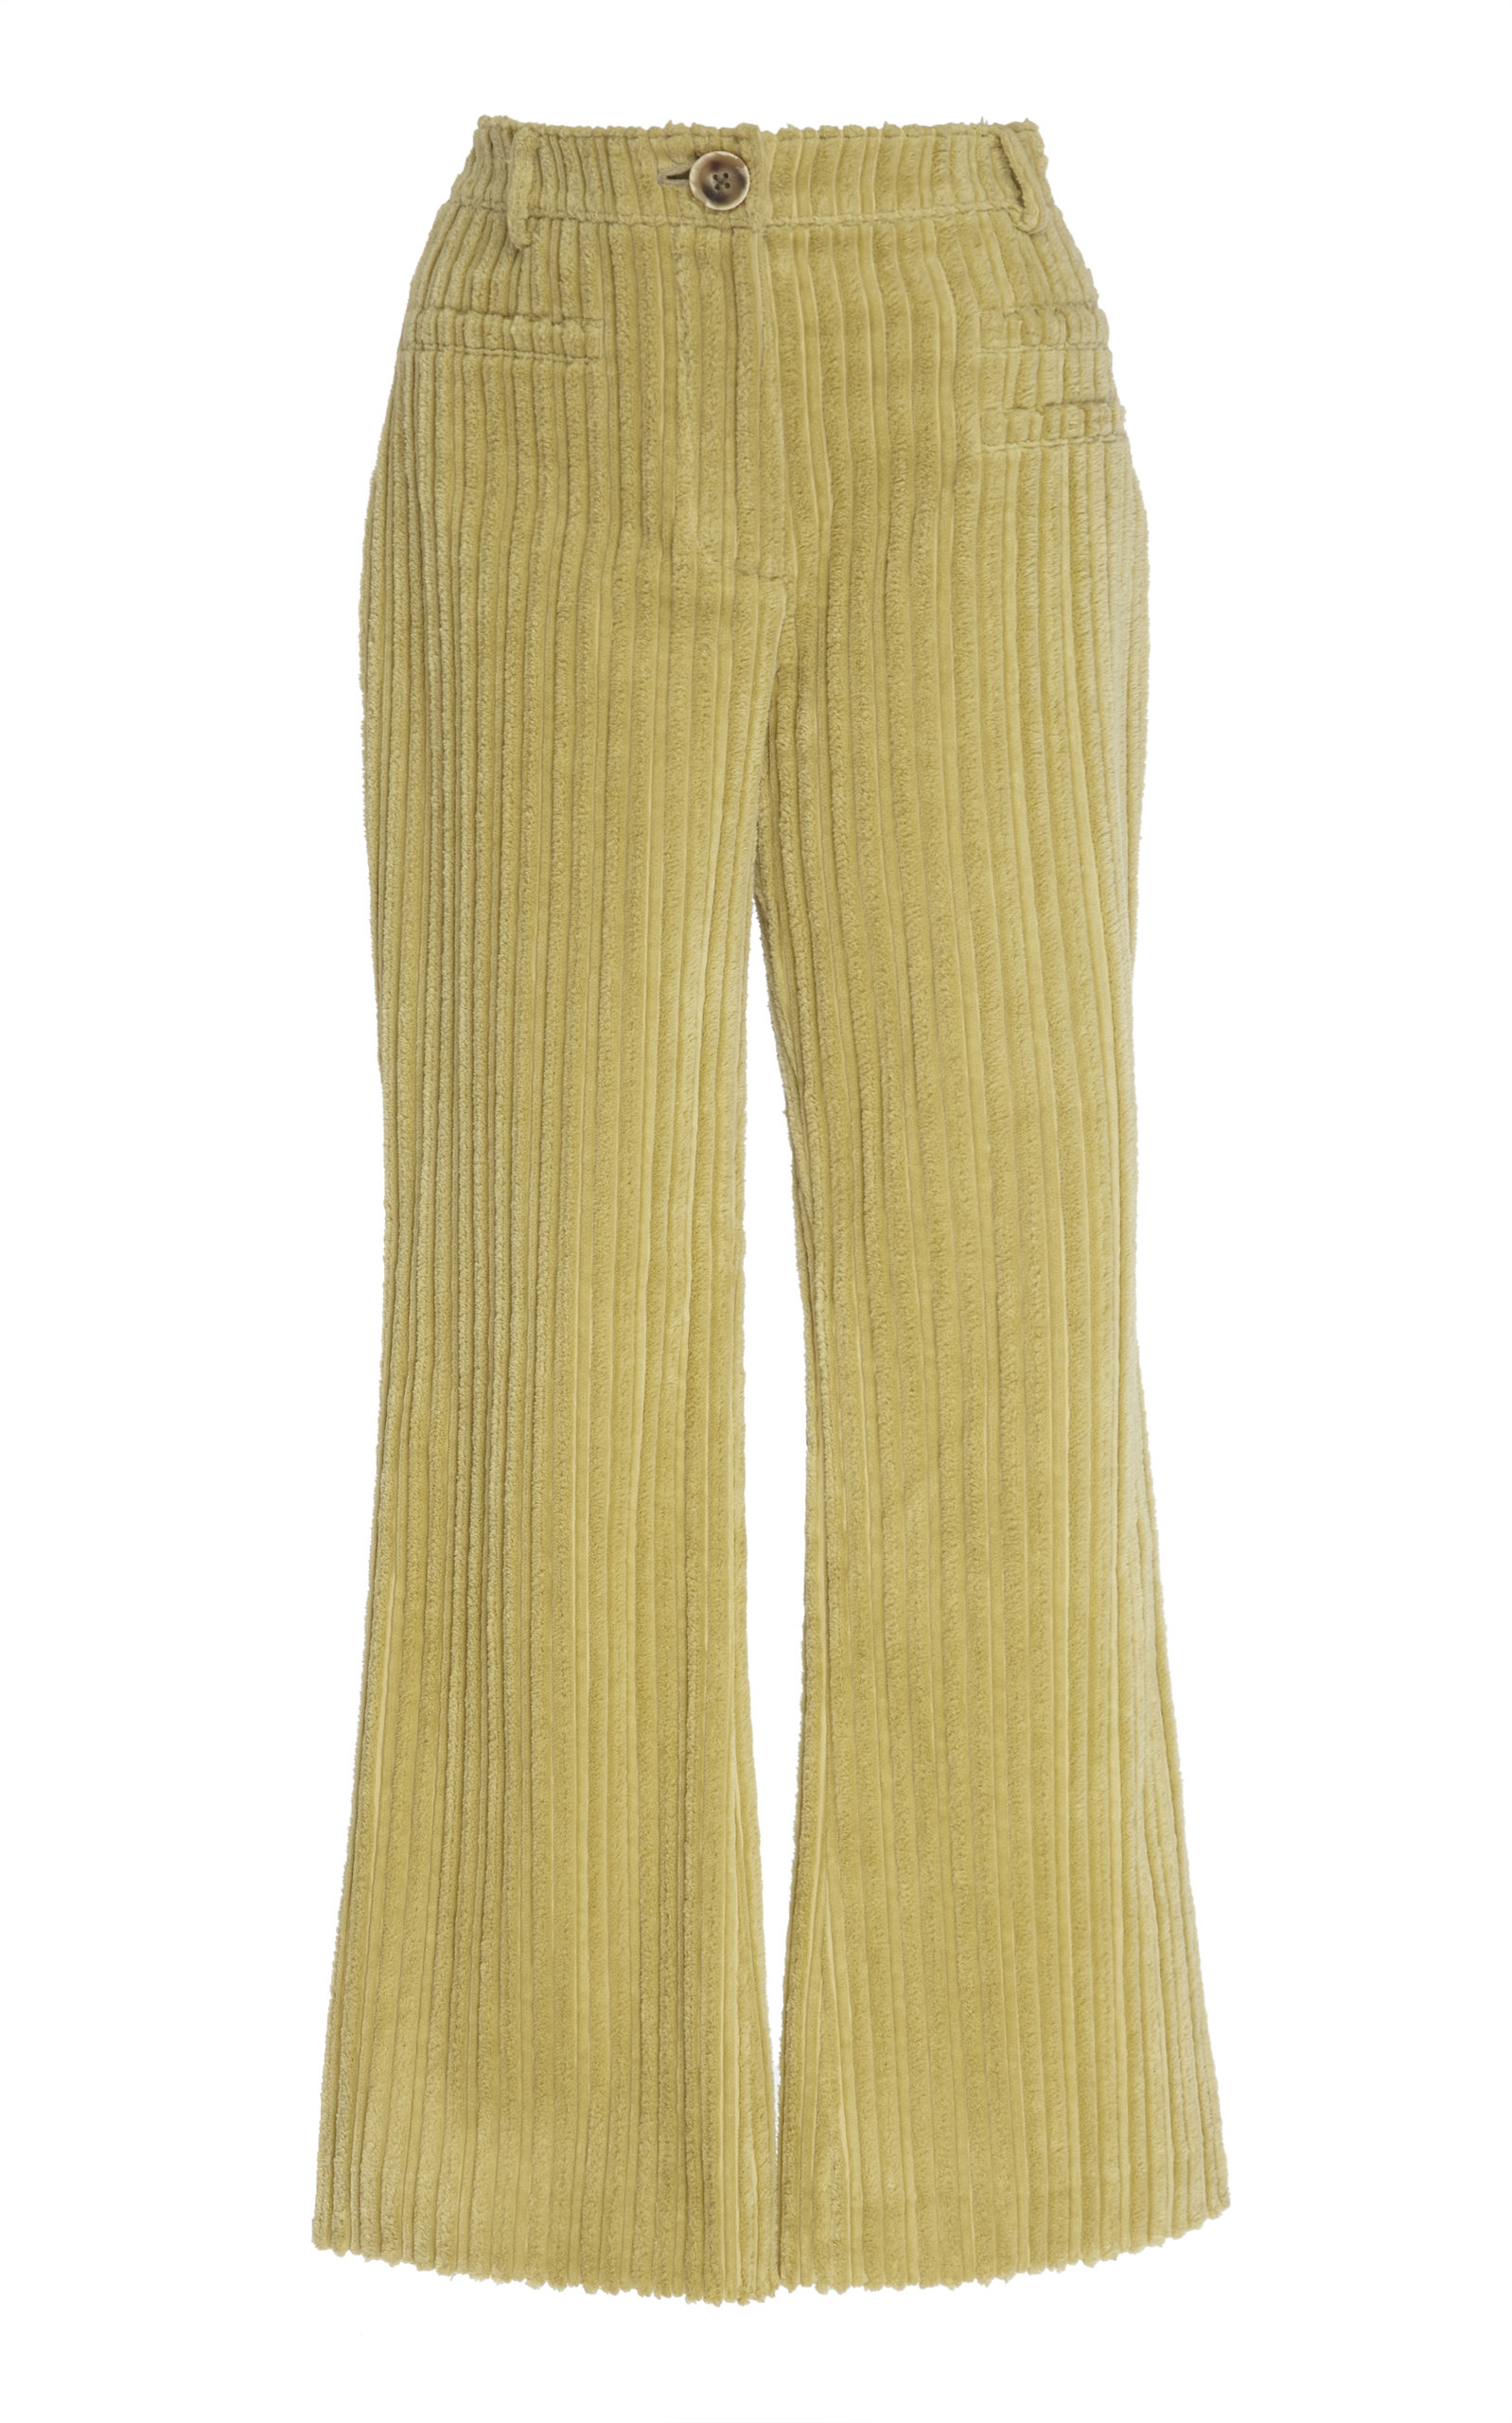 Rejina Pyo Pants MAEVE HIGH-RISE CORDUROY FLARED-LEG CROPPED TROUSERS